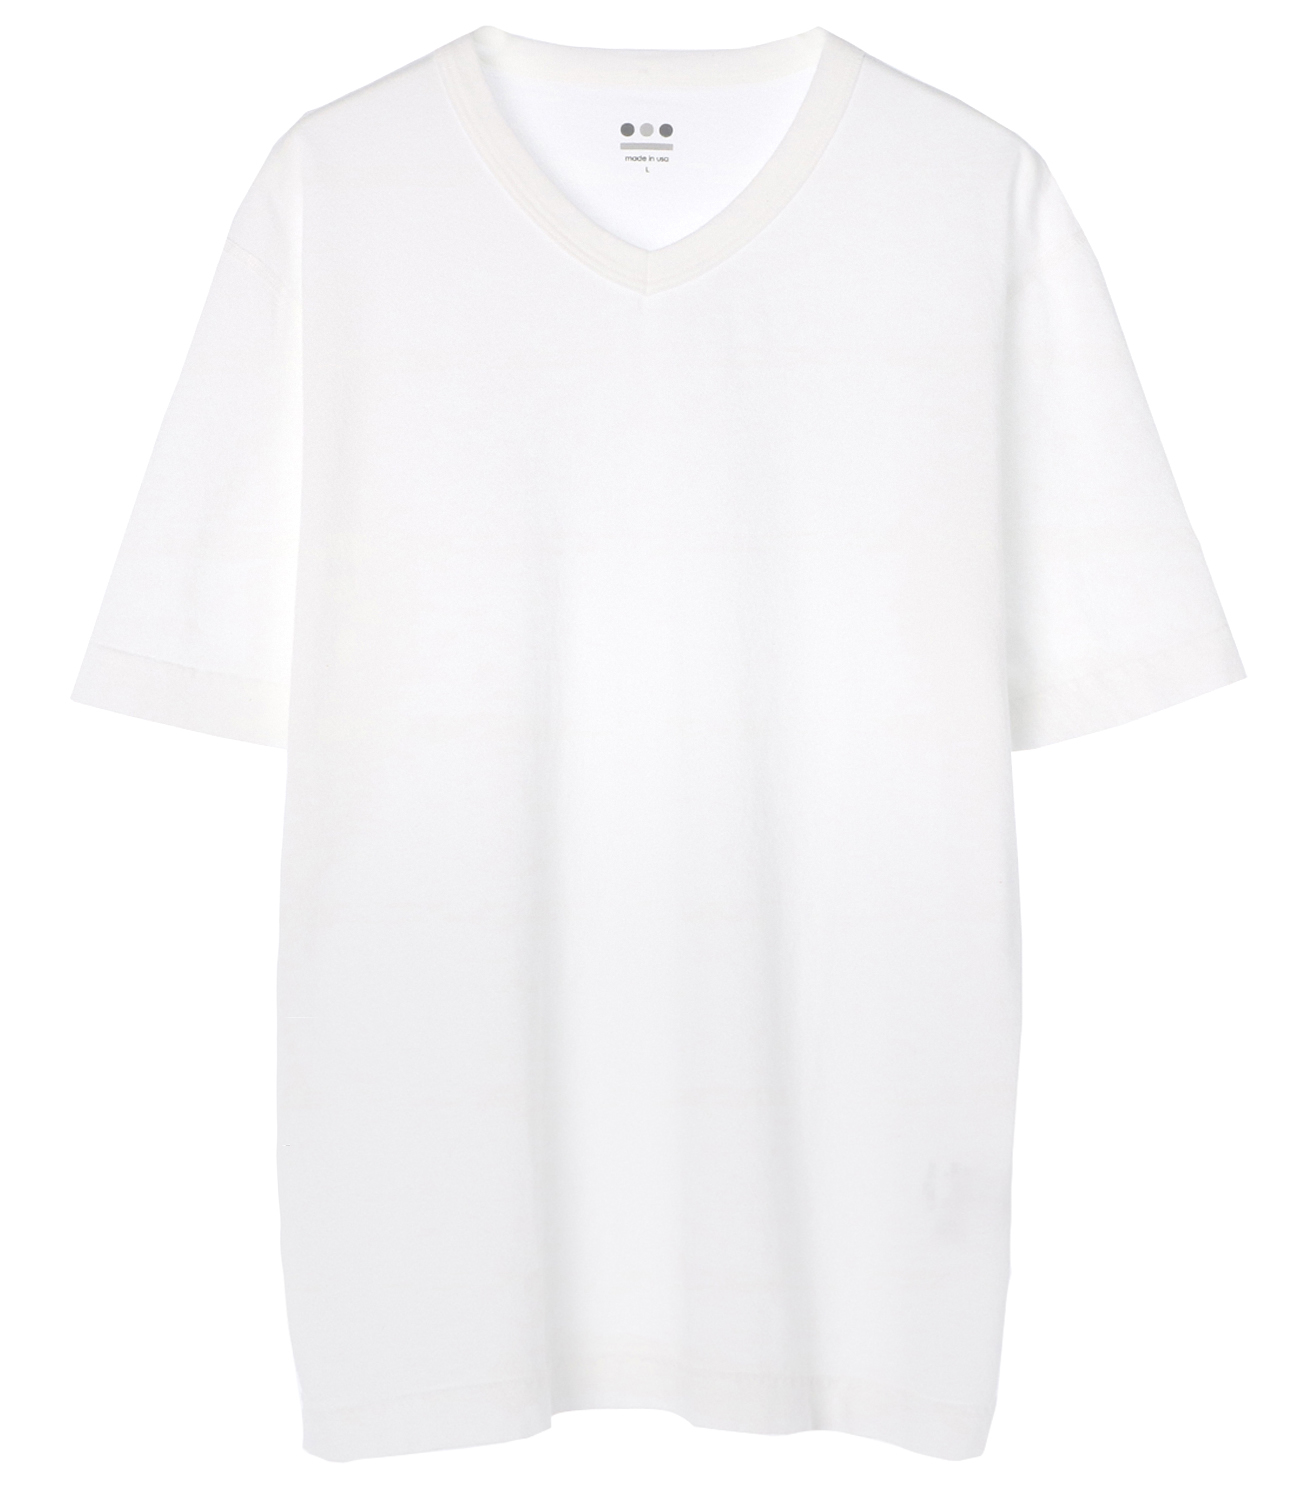 short slv v-neck 詳細画像 white 1